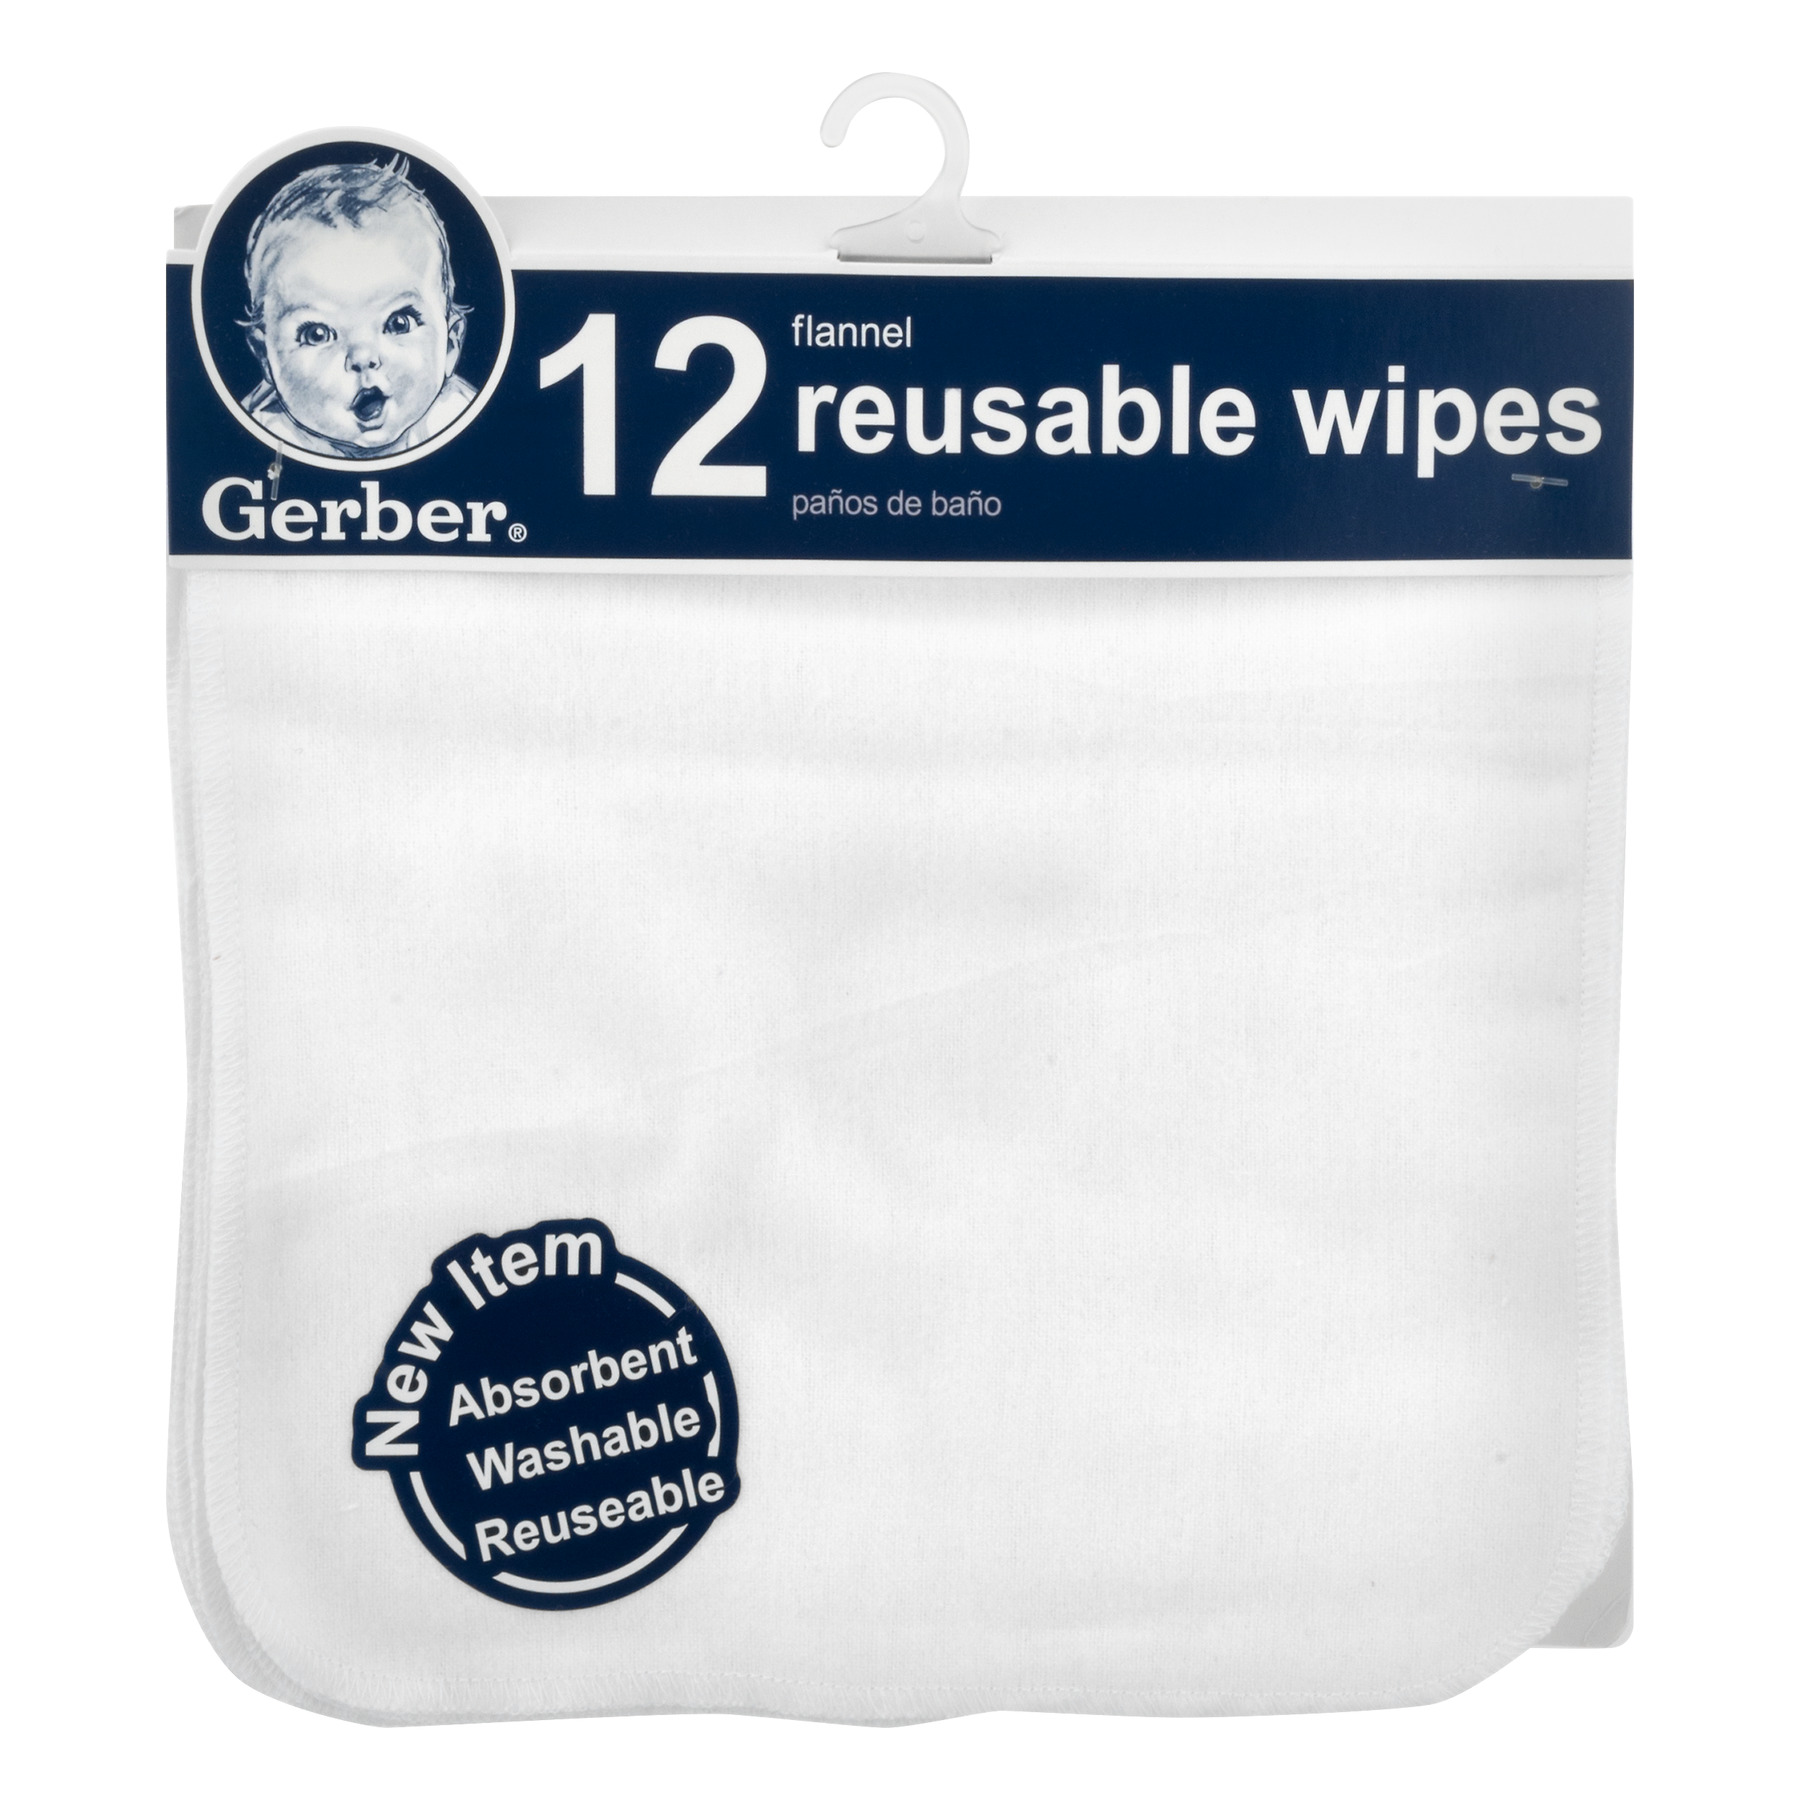 Gerber Flannel Reusable Wipes - 12 CT12.0 CT